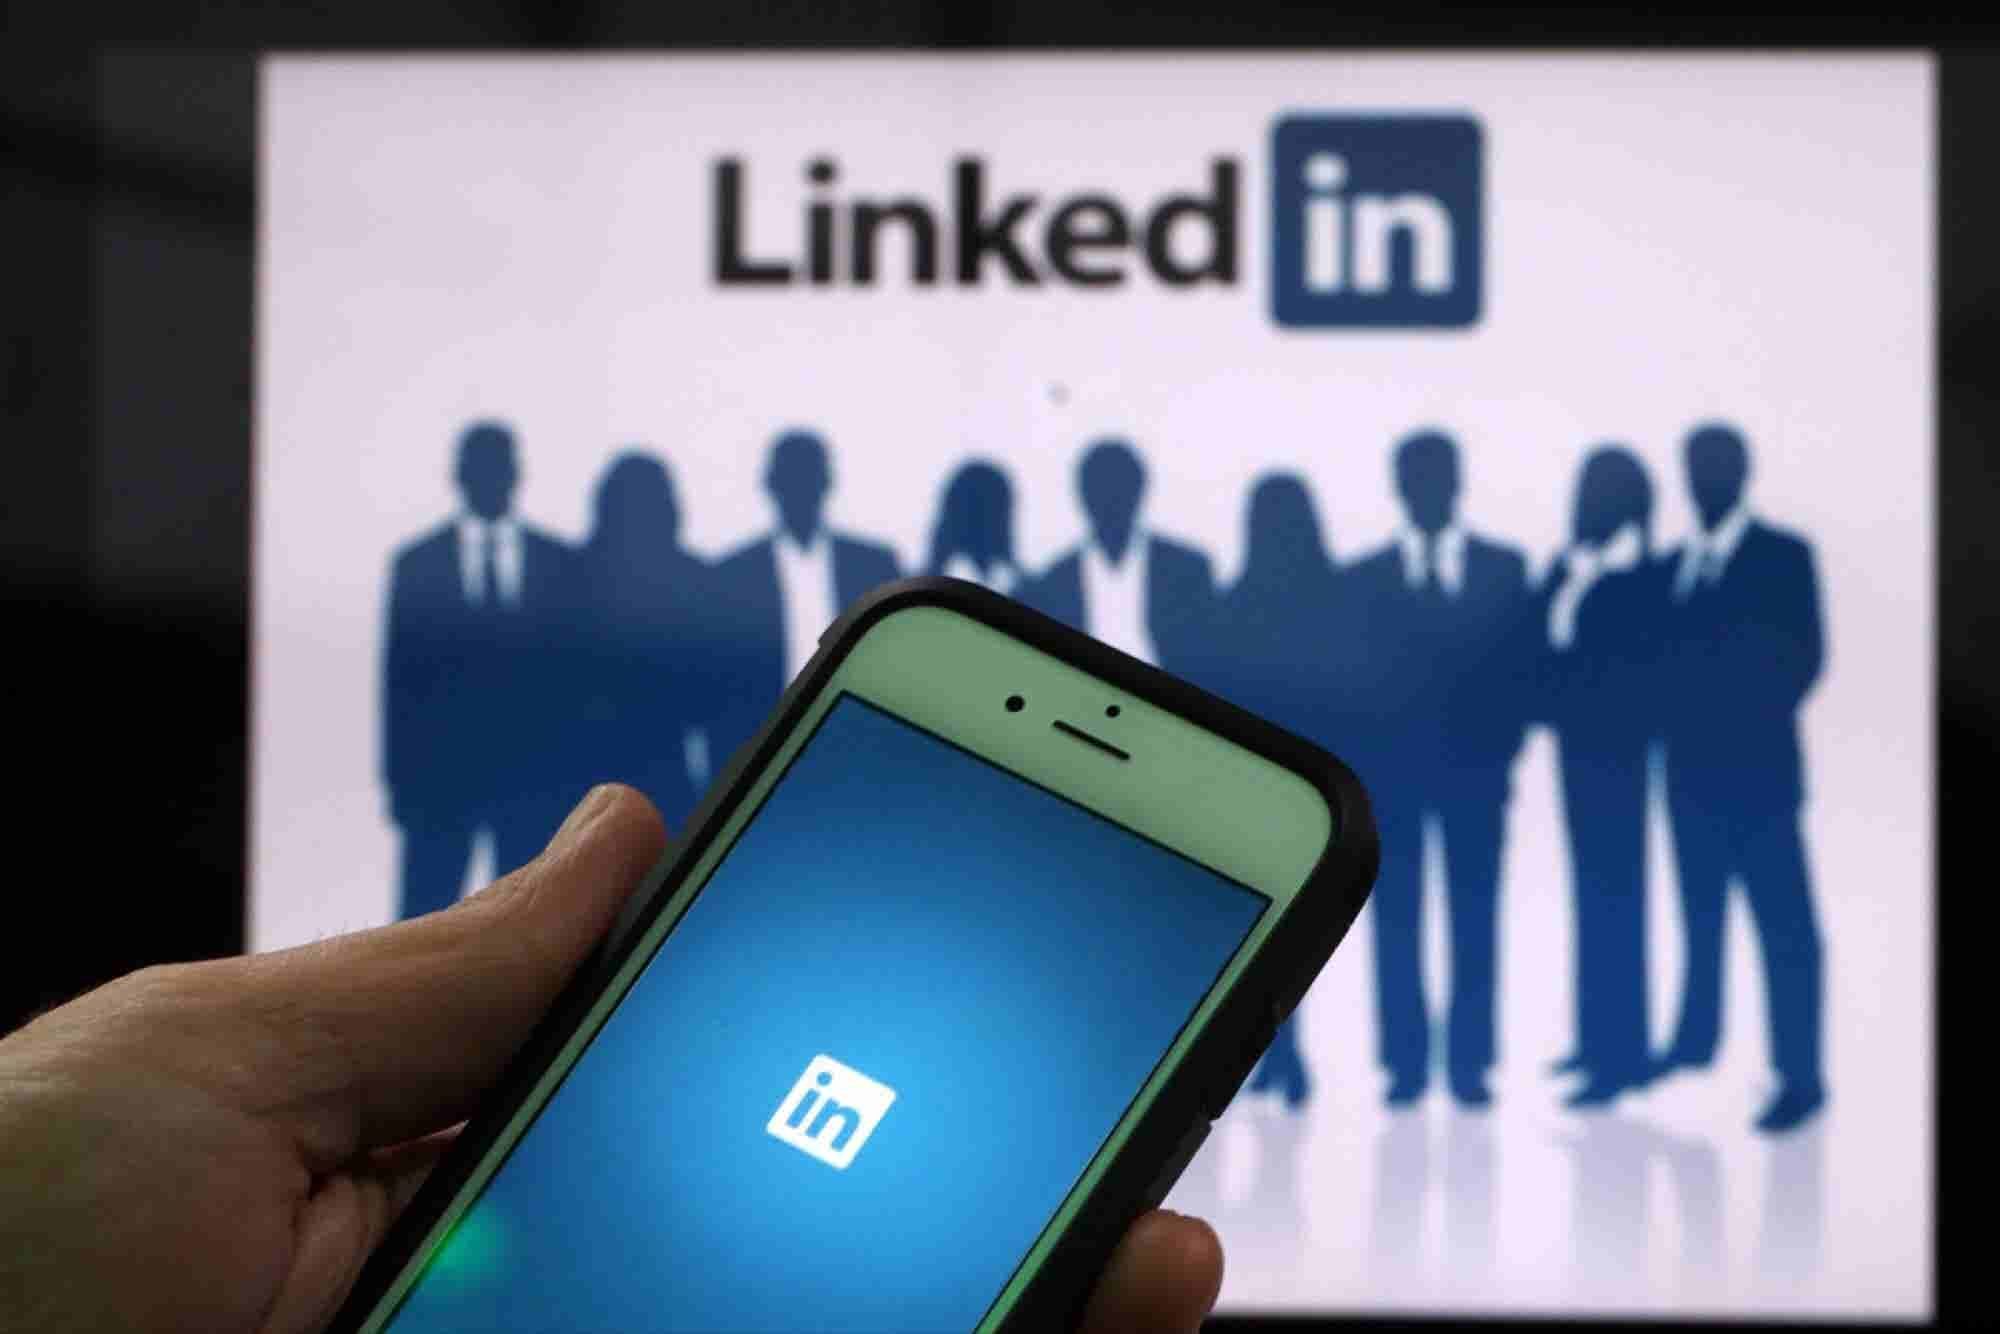 Finding Investors Through LinkedIn